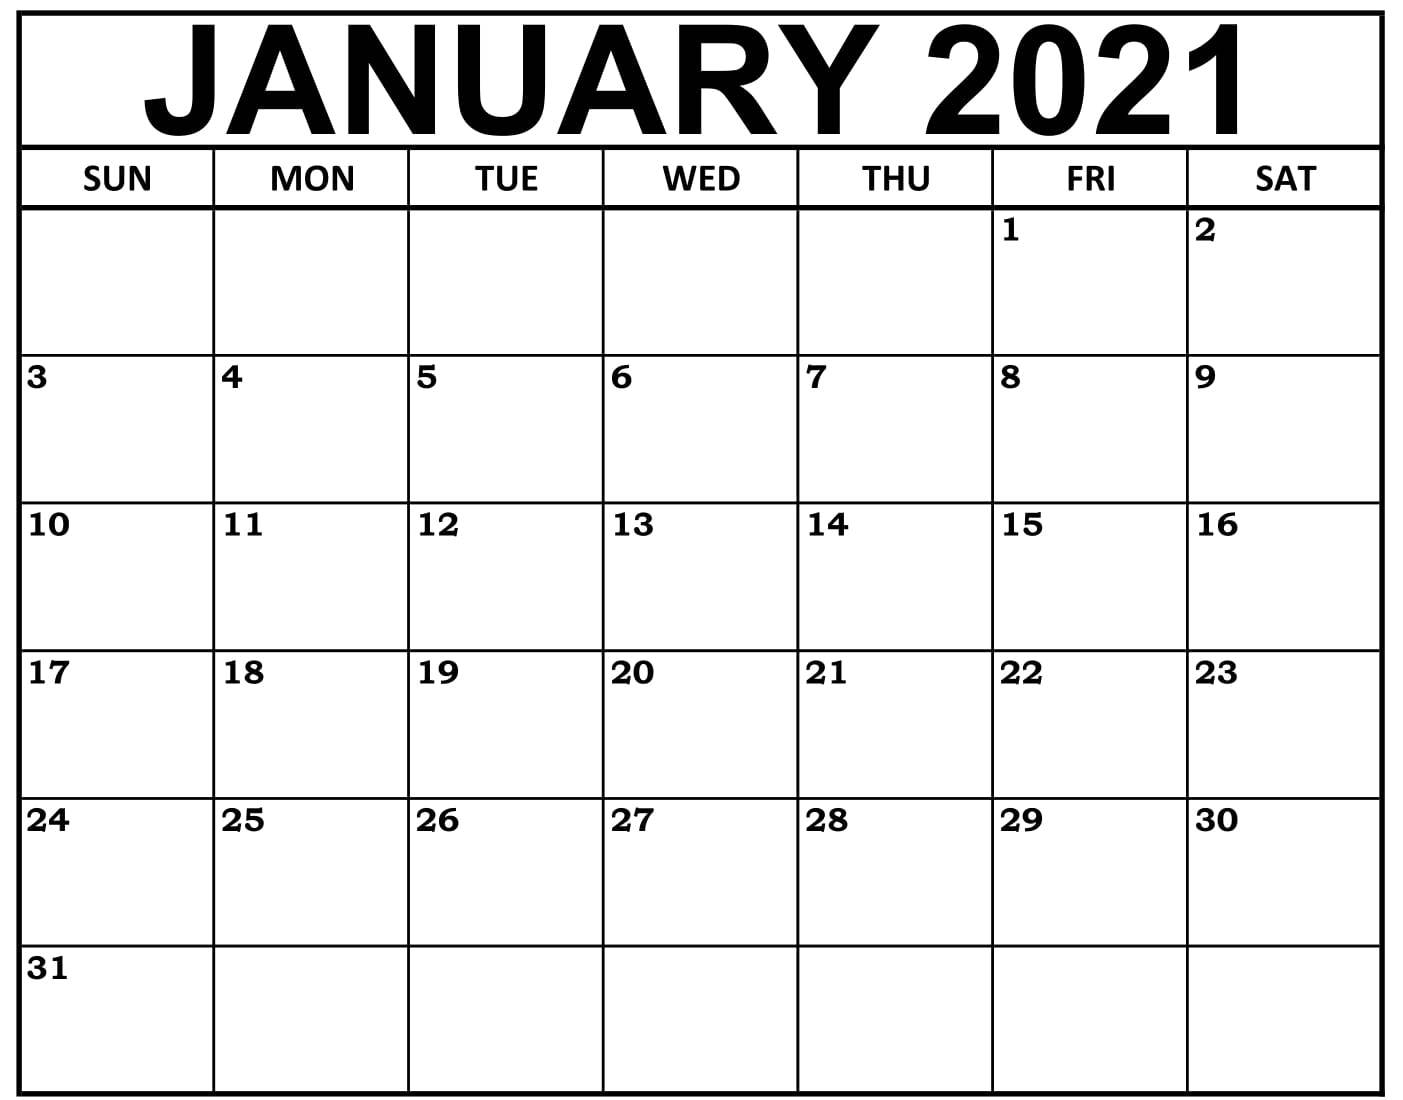 January 2021 Calendar Canada With National Holidays - Set